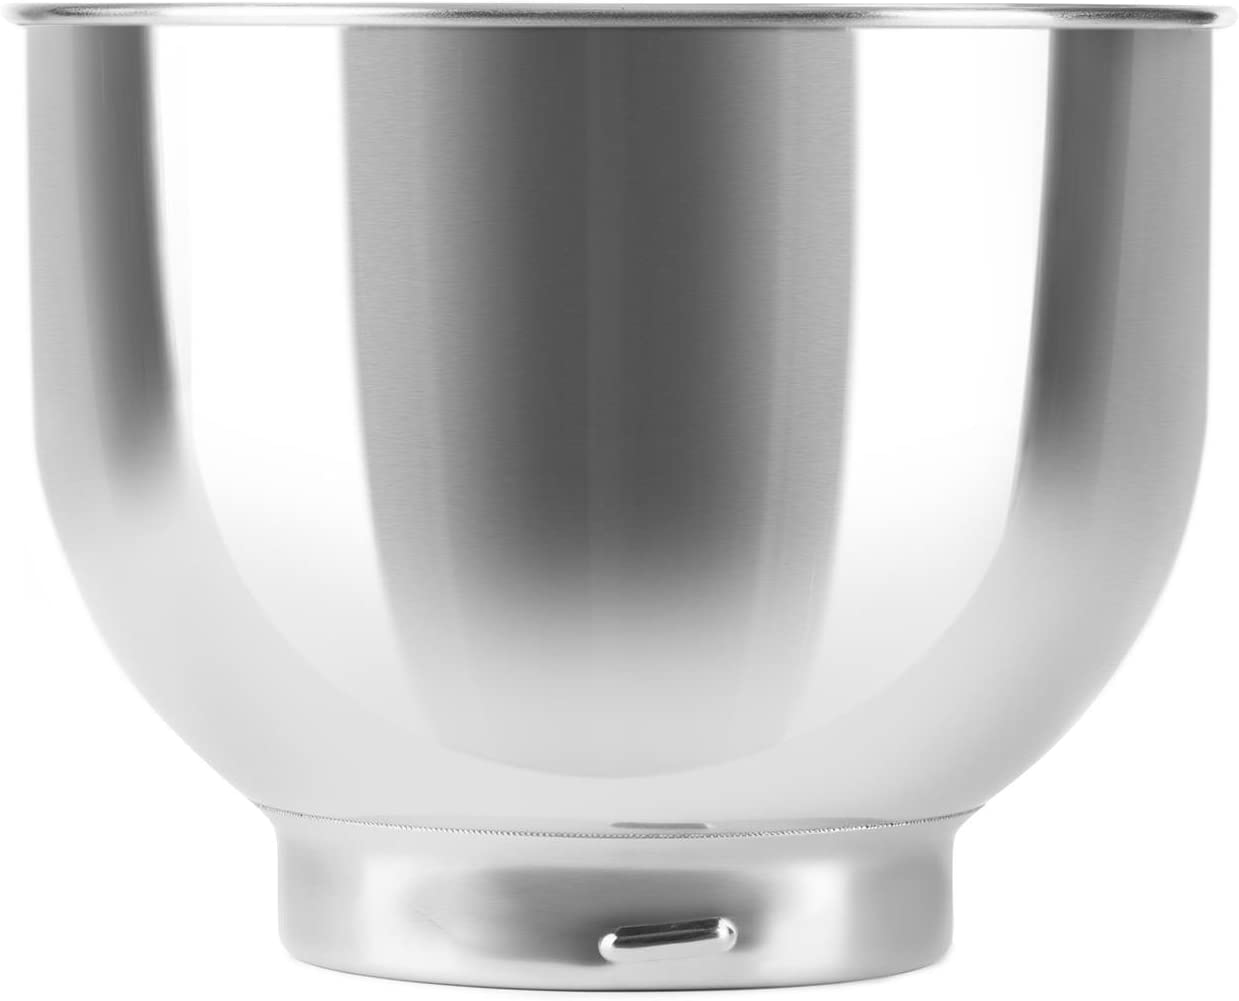 Klarstein Bella/Lucia Series, Stainless Steel Bowl, Counter-Clockwise, Replacement Part